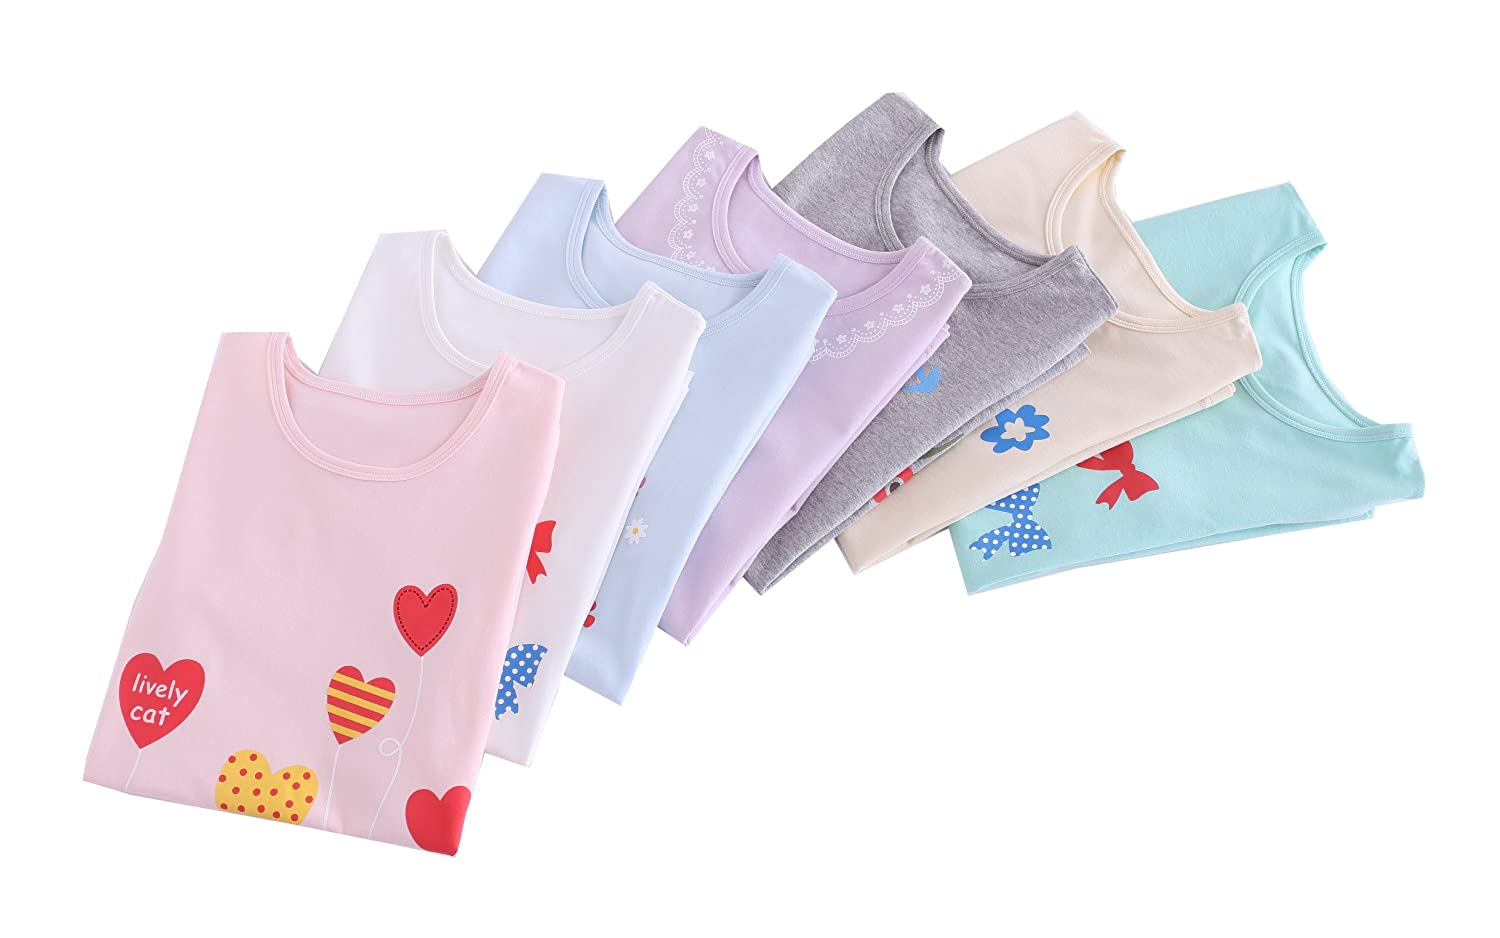 ABClothing Cotton Grils Nightgown Vary Colors 3-10 Years Old